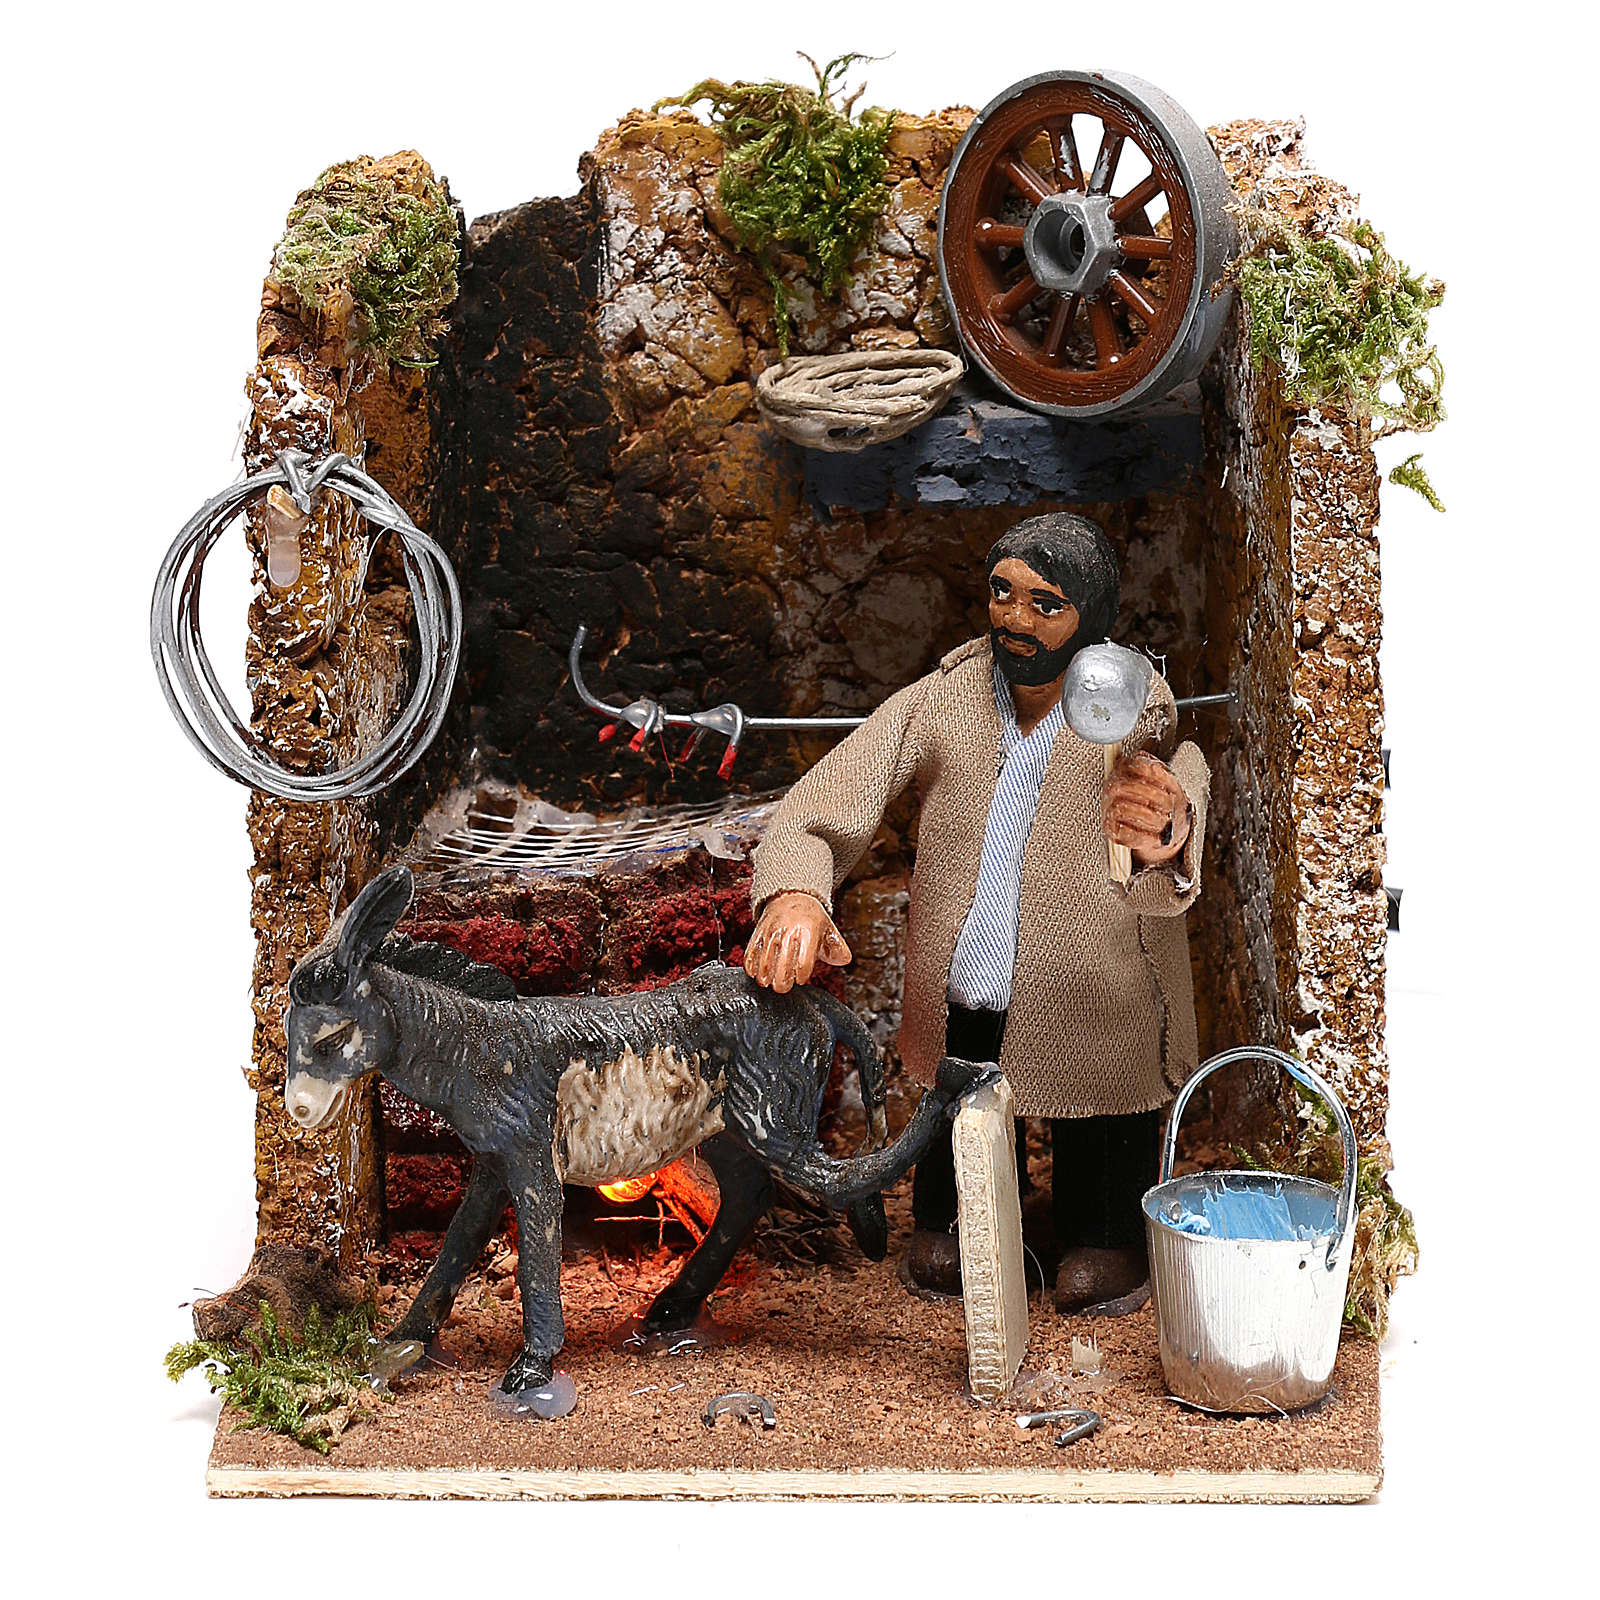 Farrier with donkey, animated figurine 8 cm Neapolitan nativity oven effect 4